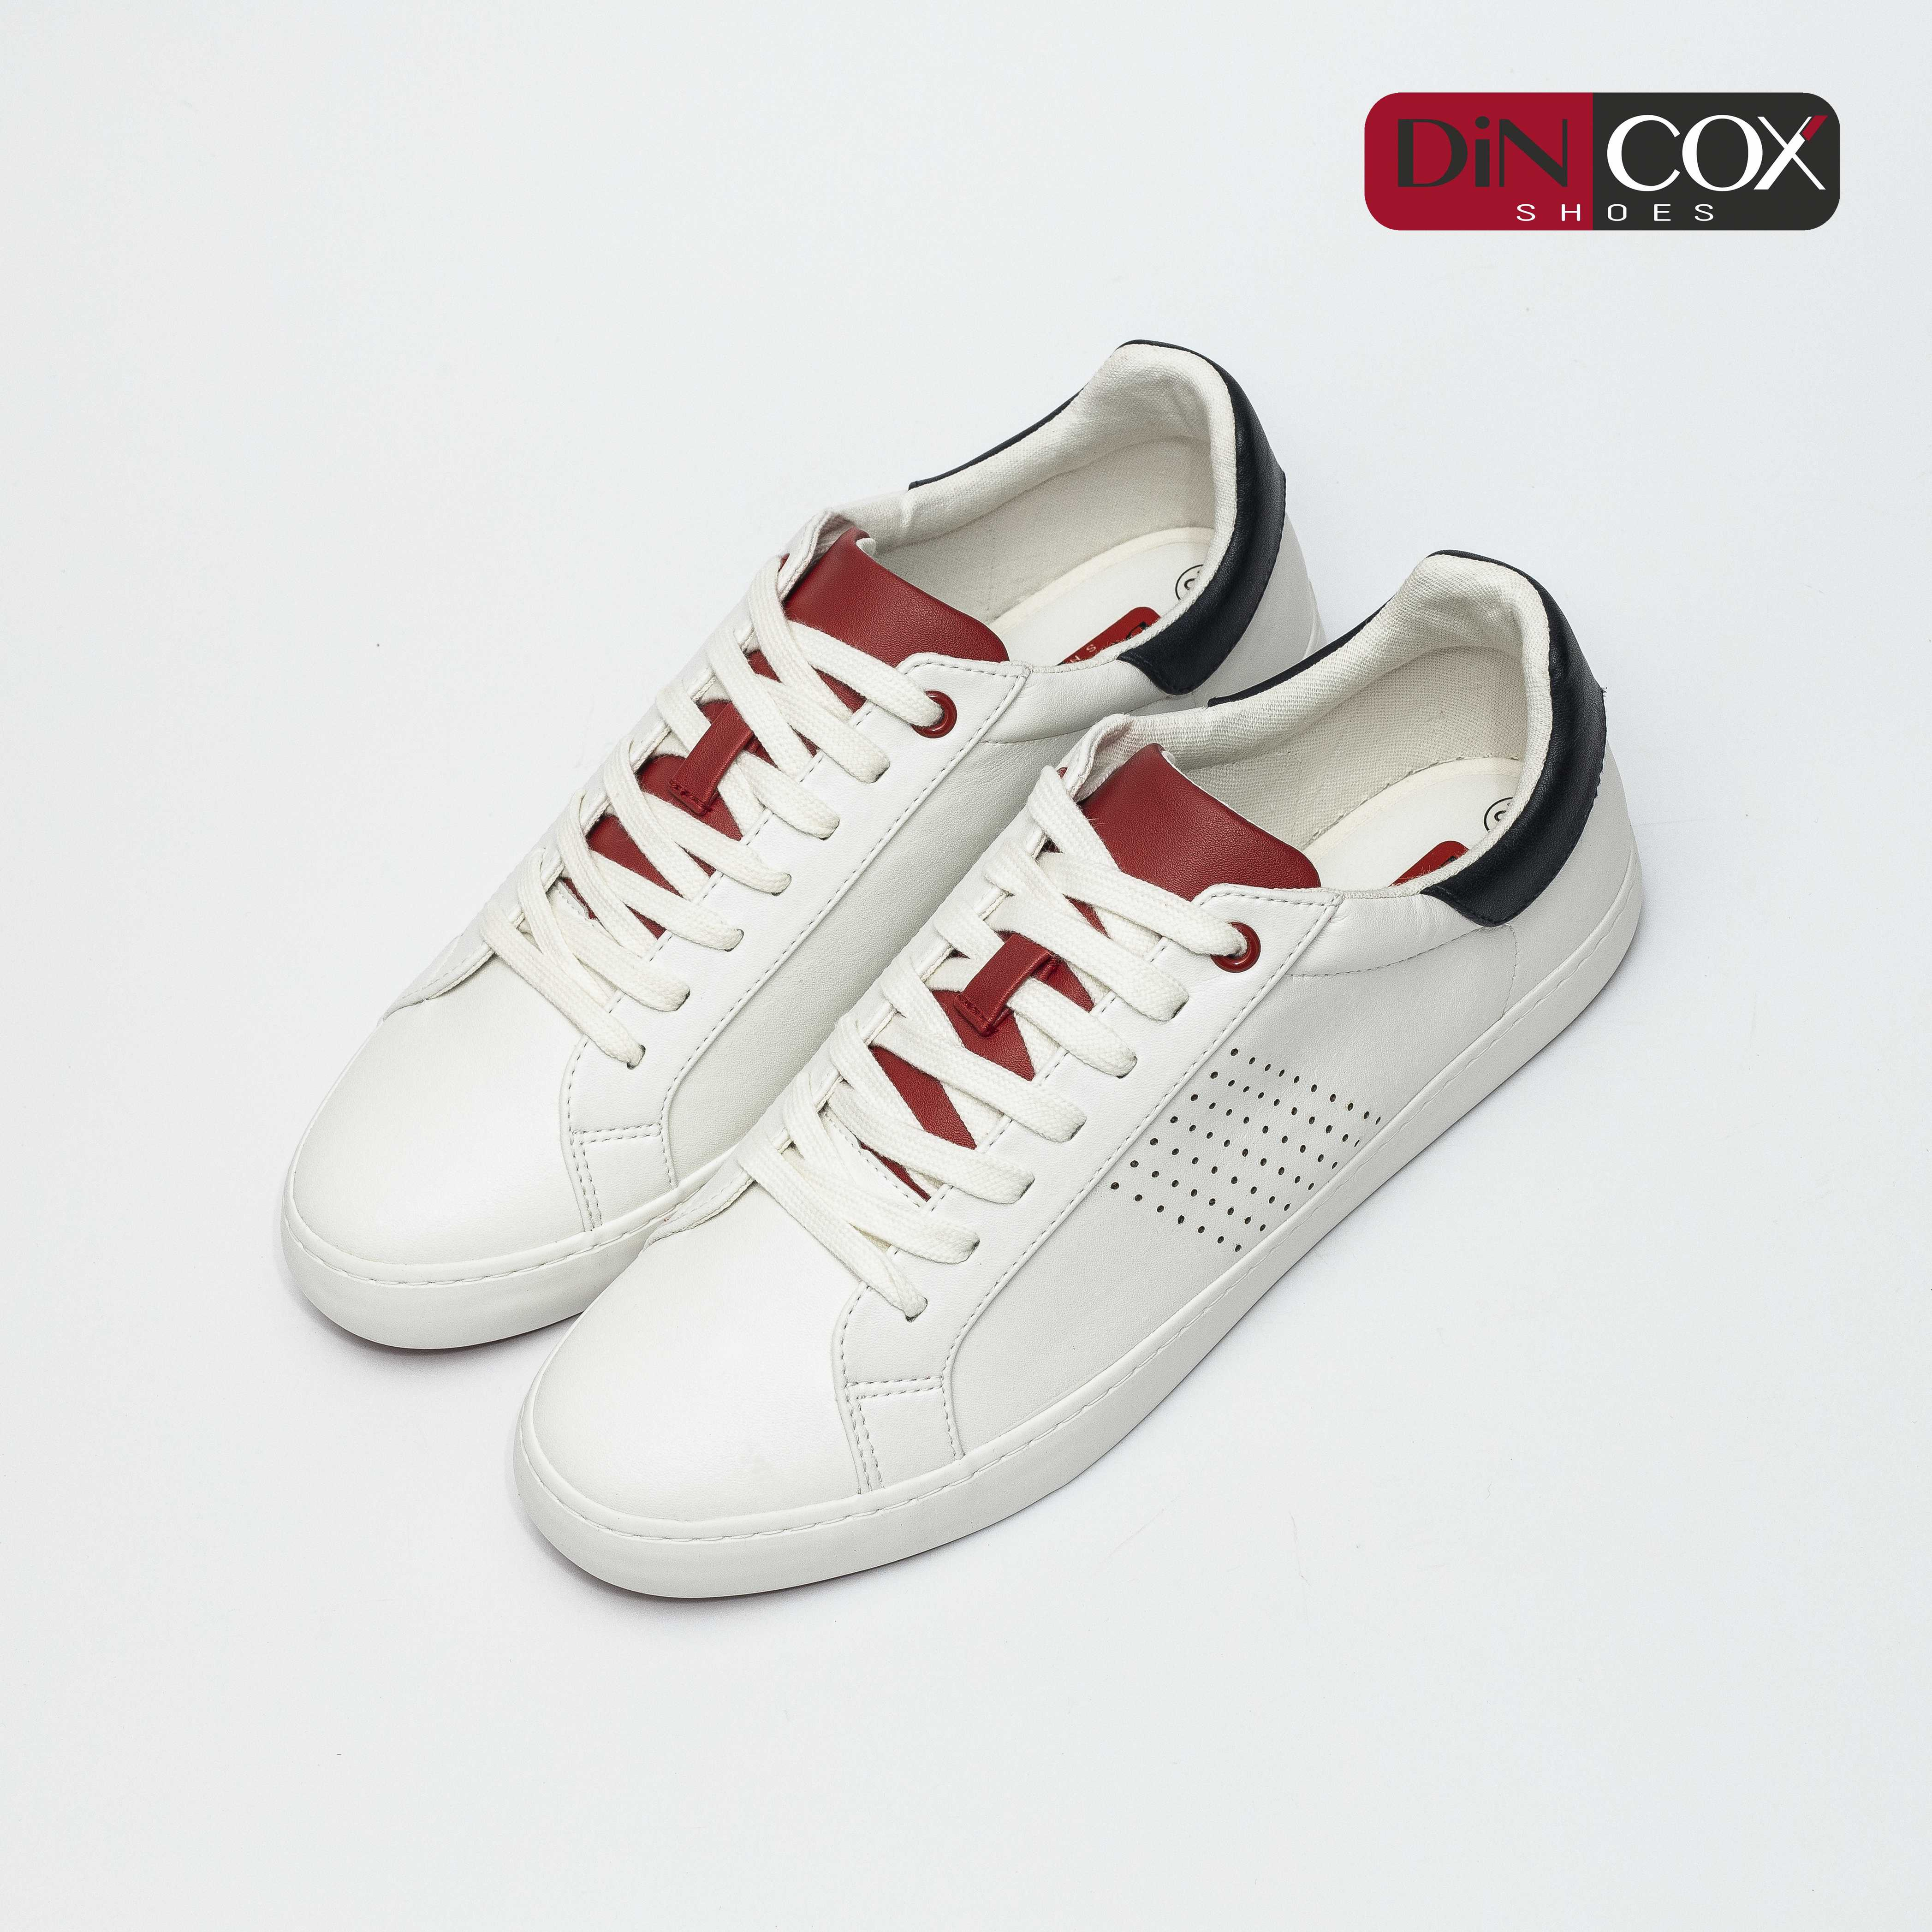 Giày Sneaker Nam C01 Offwhite/Red Dincox